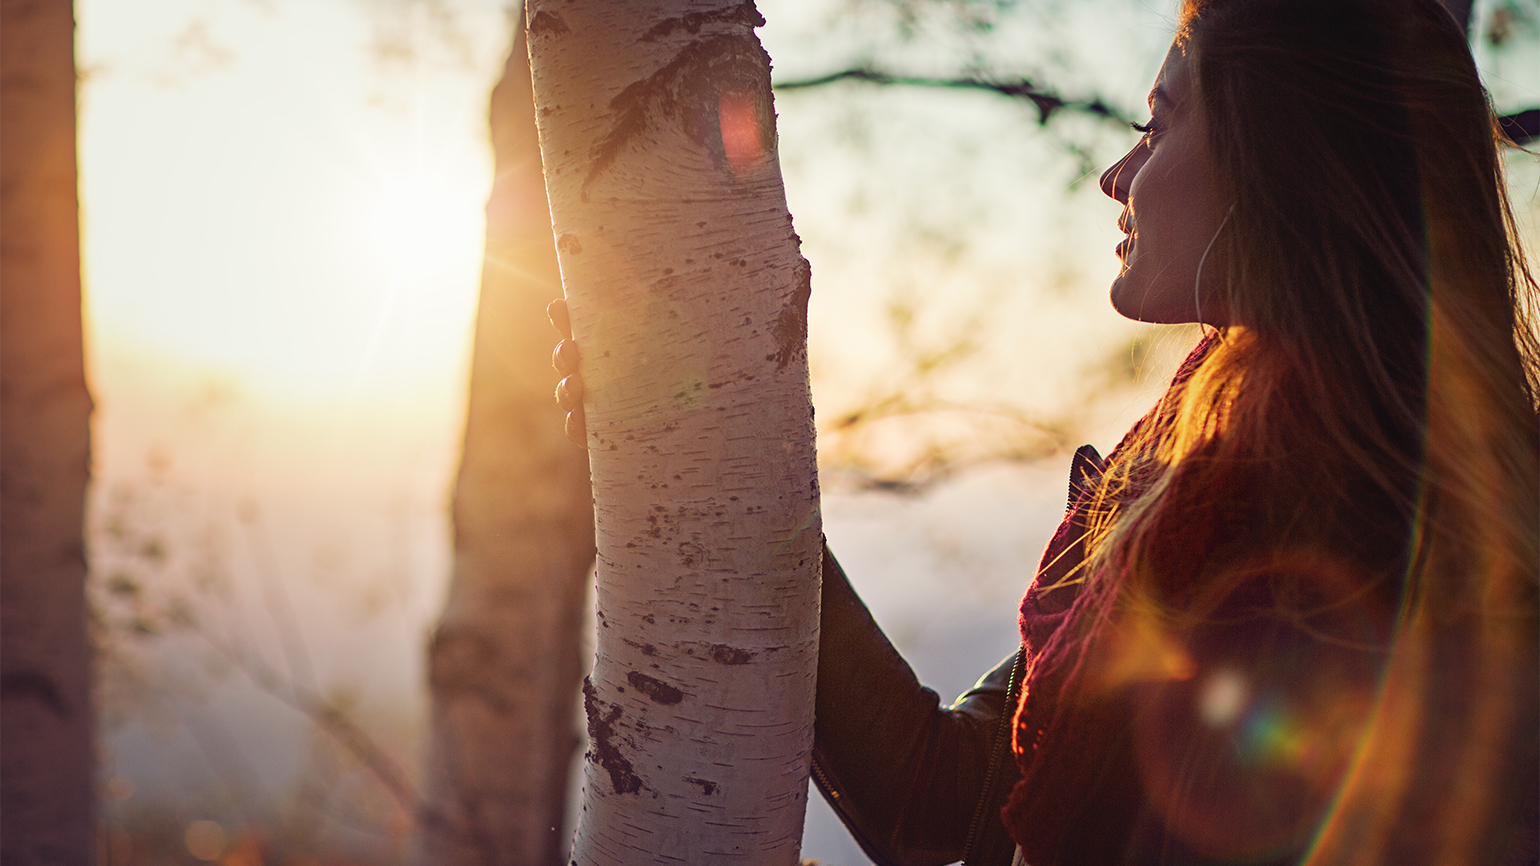 The morning sun shines on a woman in a forest